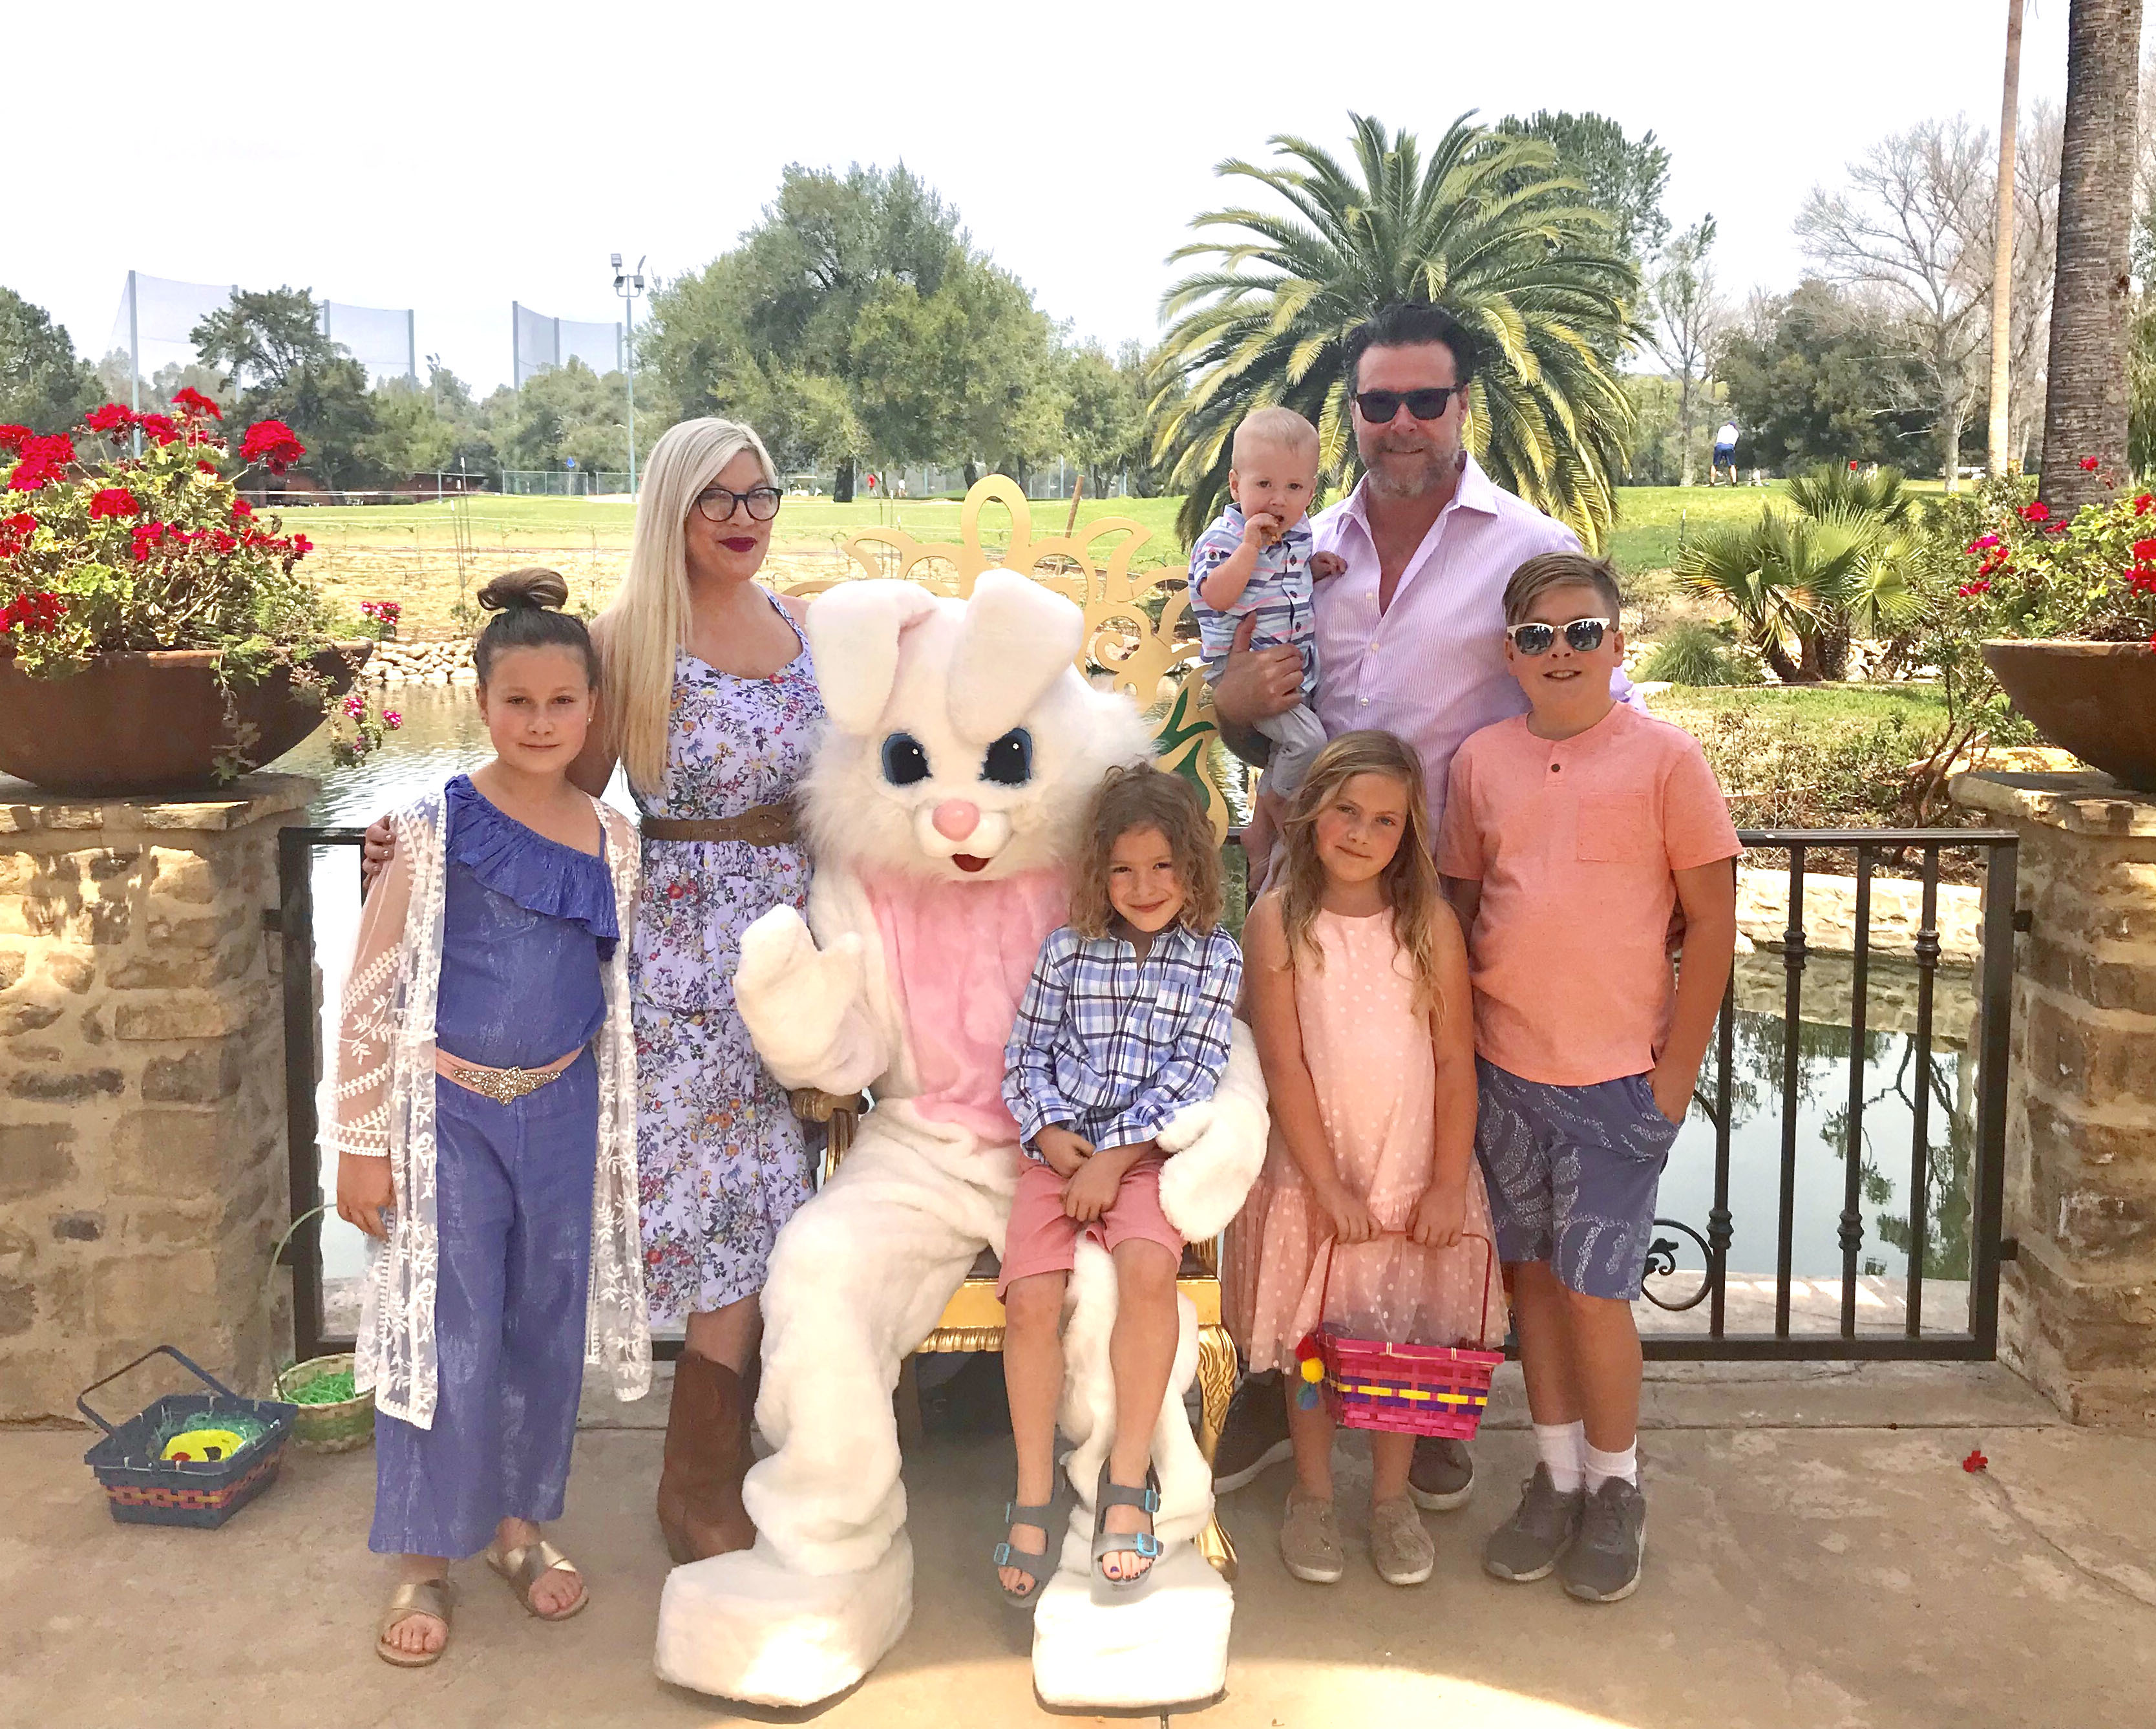 Tori Spelling and husband Dean McDermott and their five children, Liam, Stella, Hattie, Finn and Beau celebrate Easter at the Westlake Valley Inn in New York on April 1, 2018.